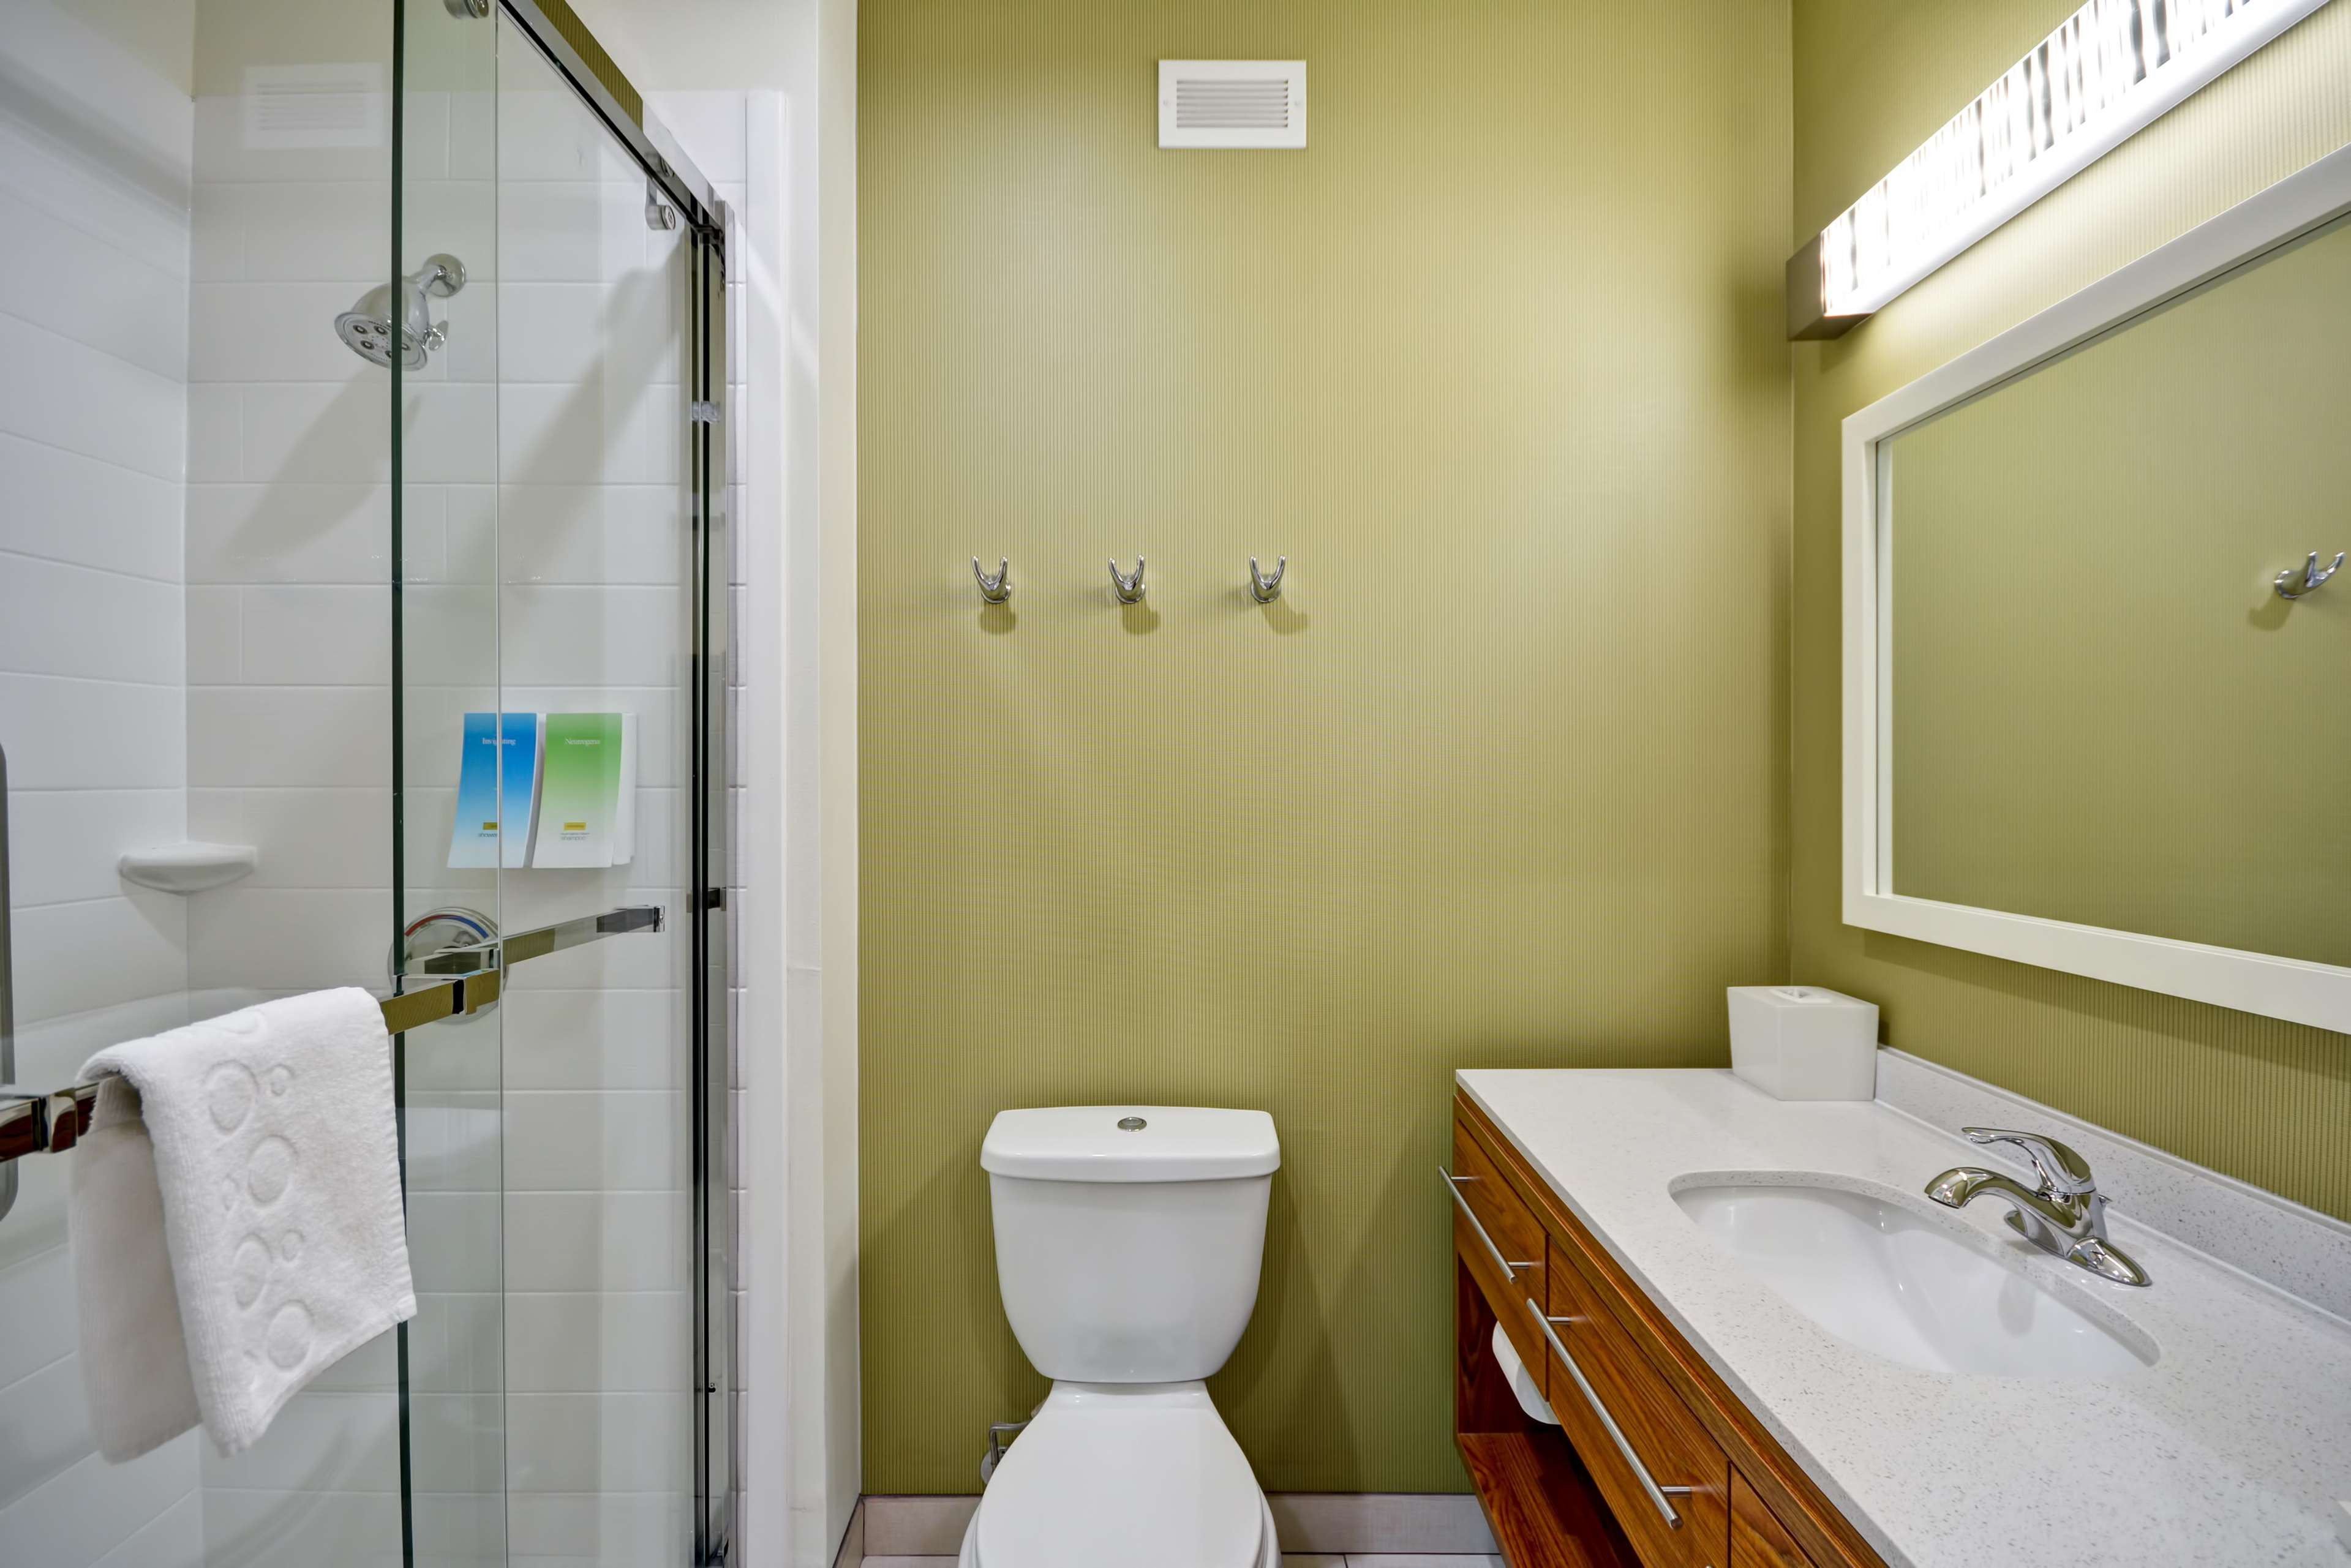 Home2 Suites by Hilton Fort Worth Southwest Cityview image 22